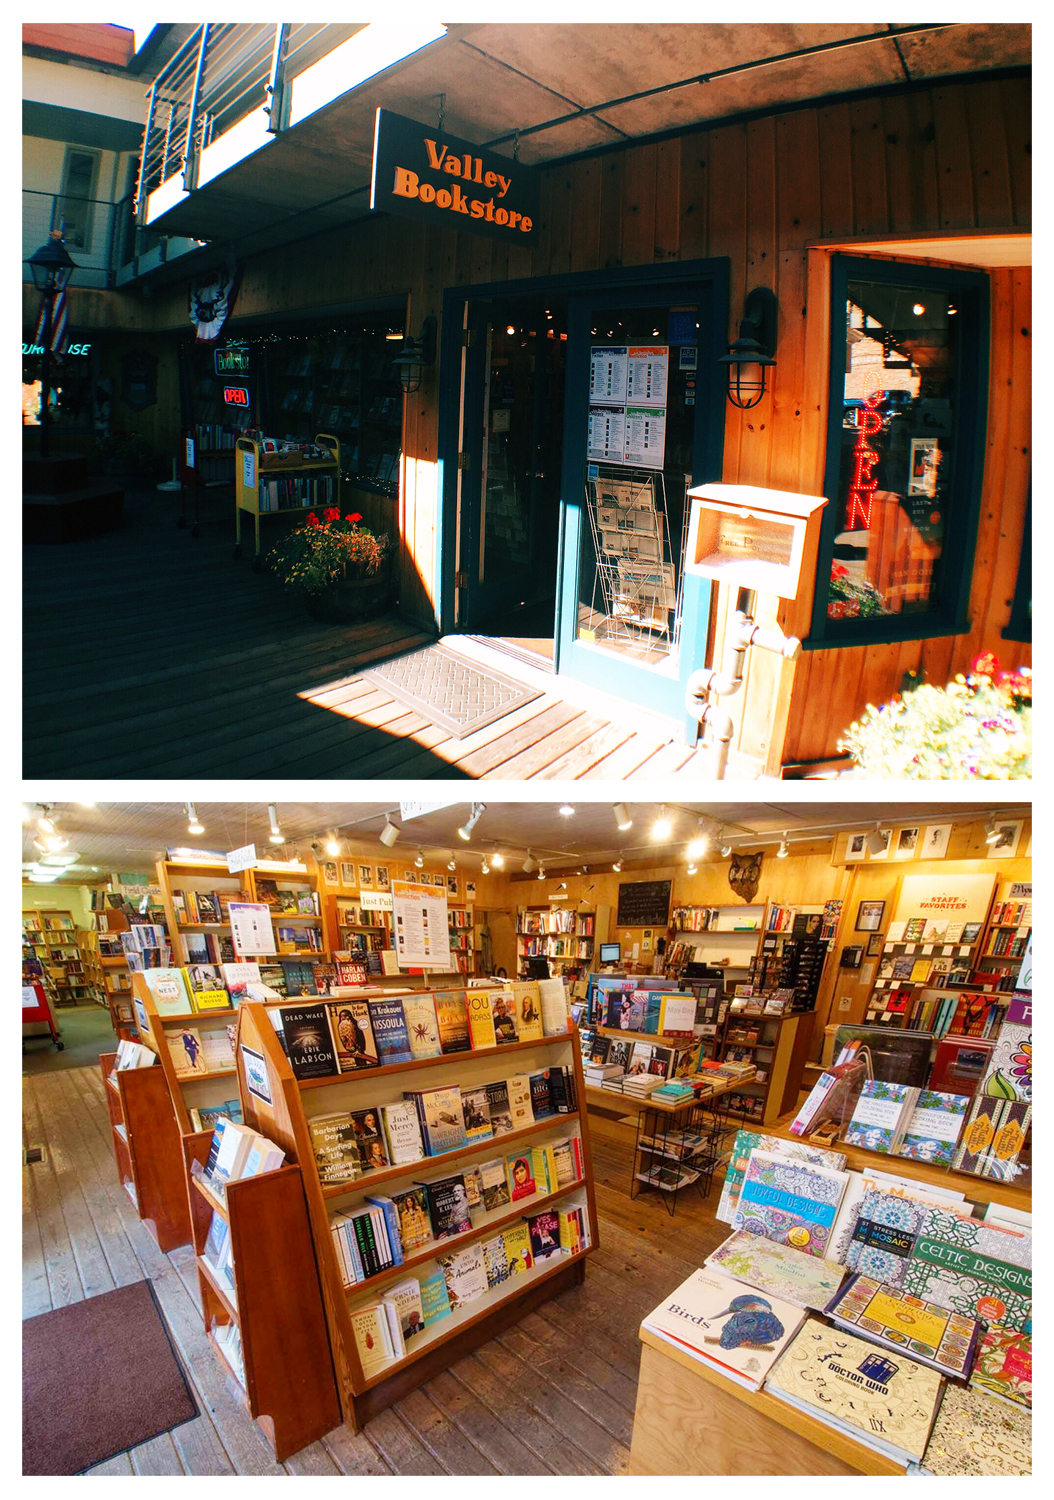 Valley Bookstore